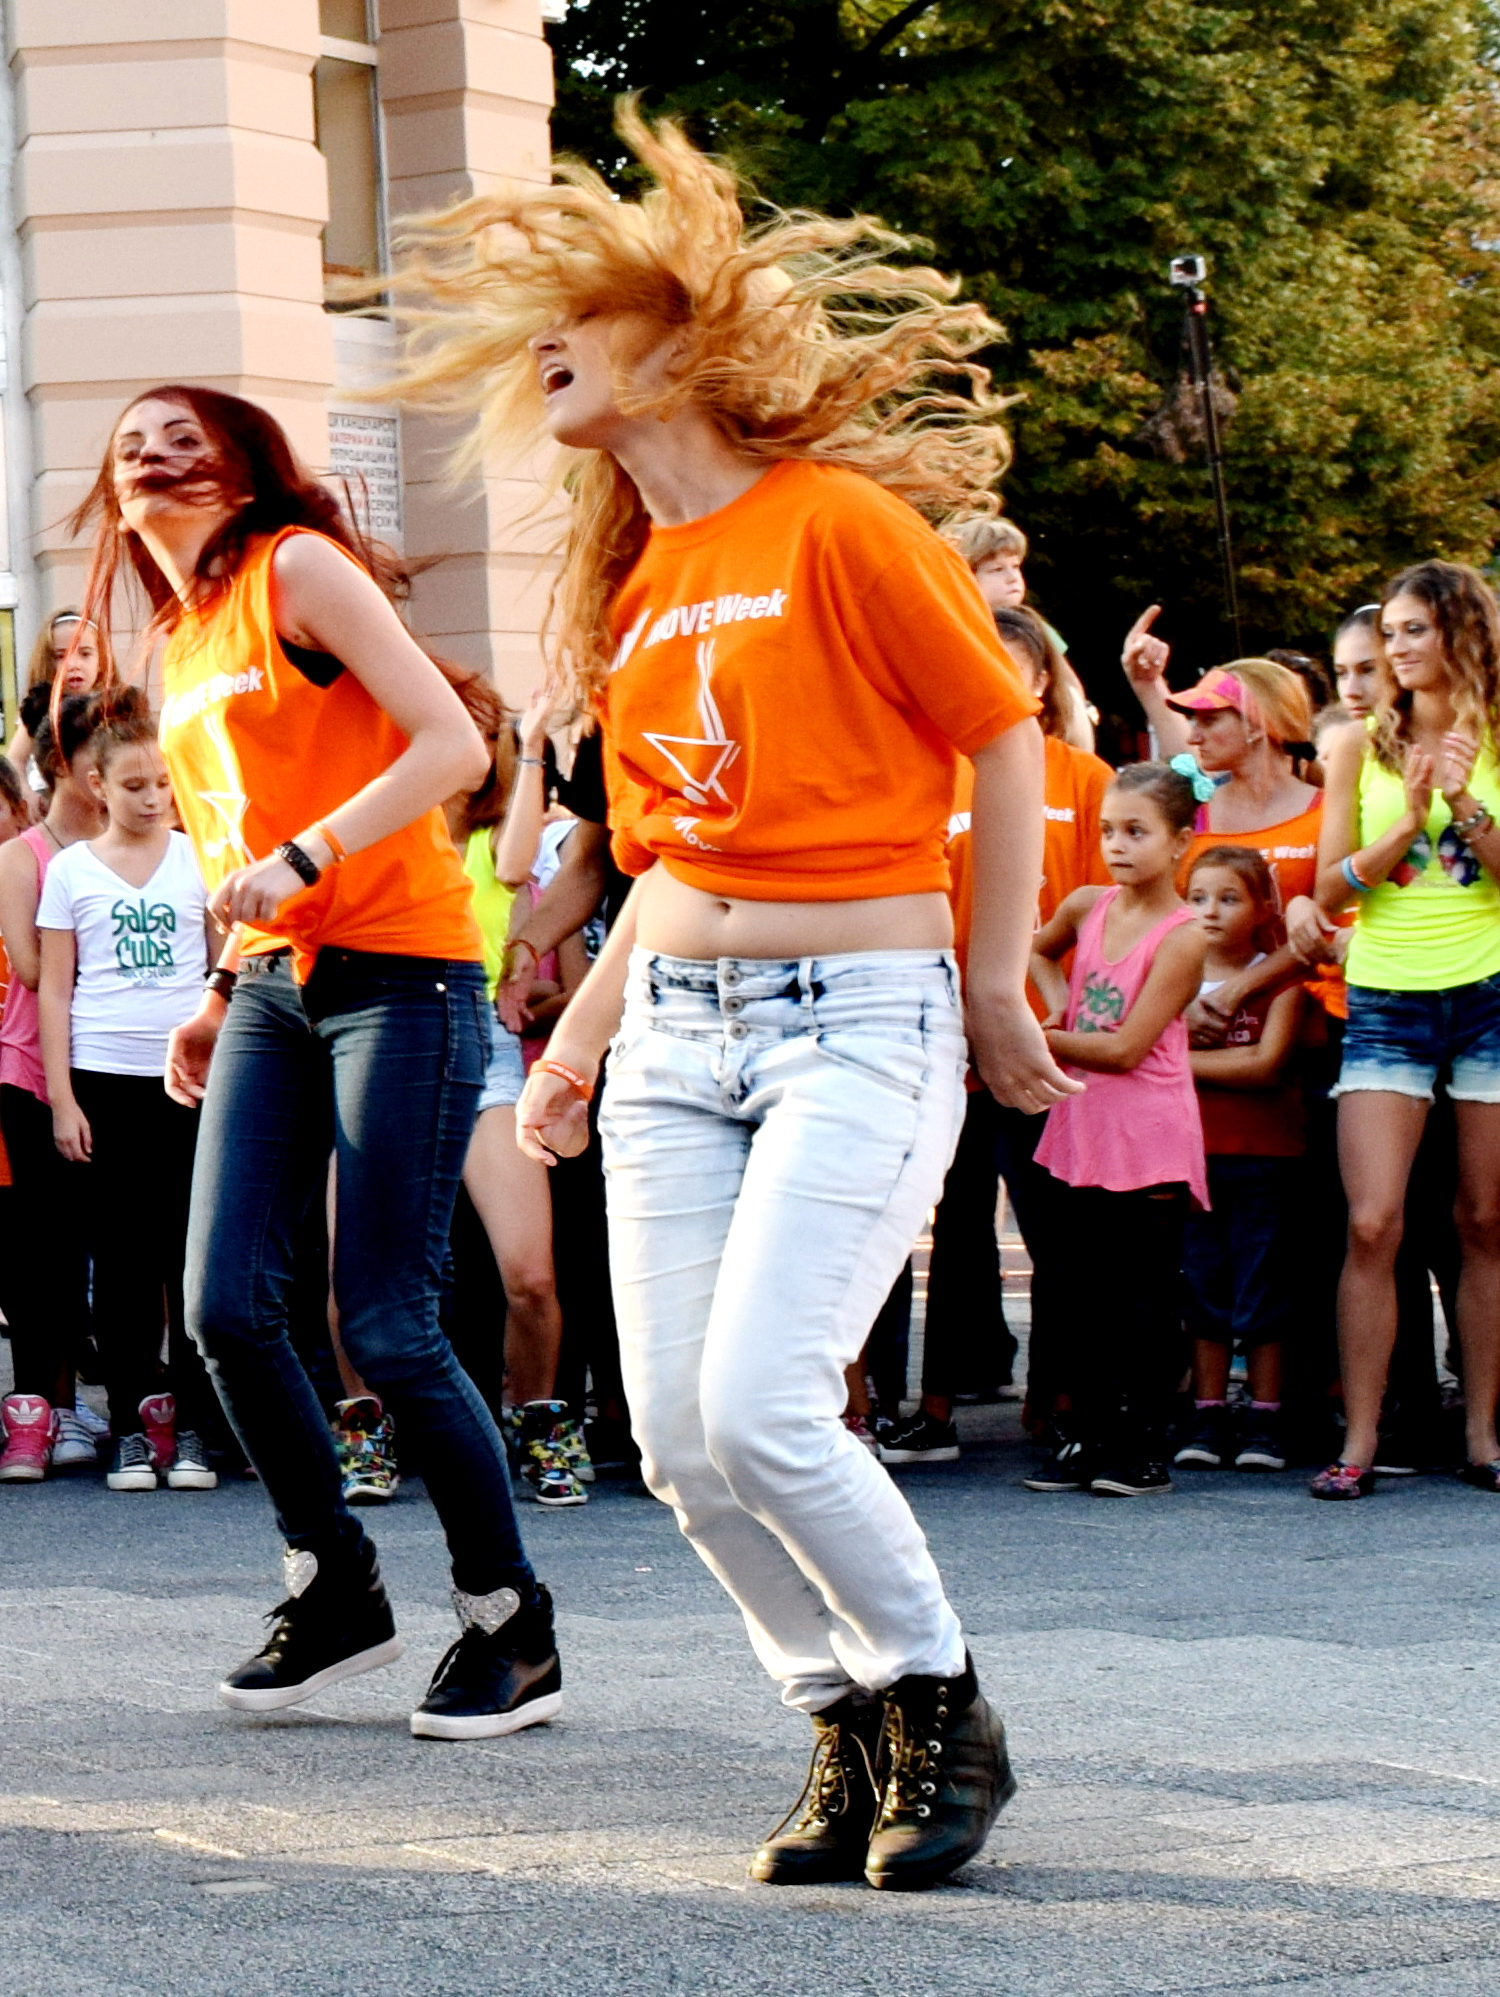 MOVE Week Plovdiv 2015 flashmob